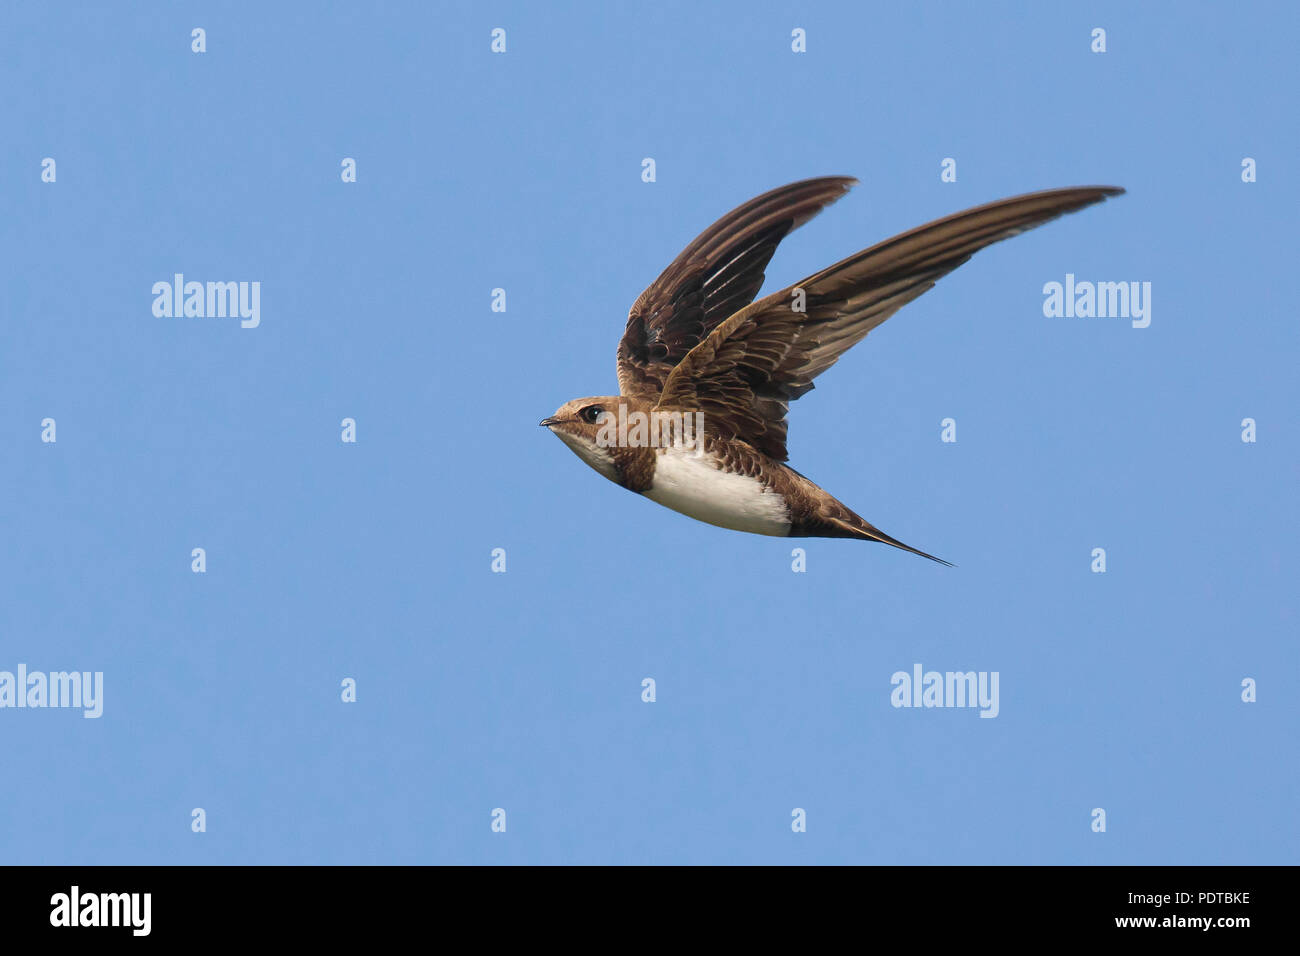 Alpine Swift flying across a blue sky. - Stock Image